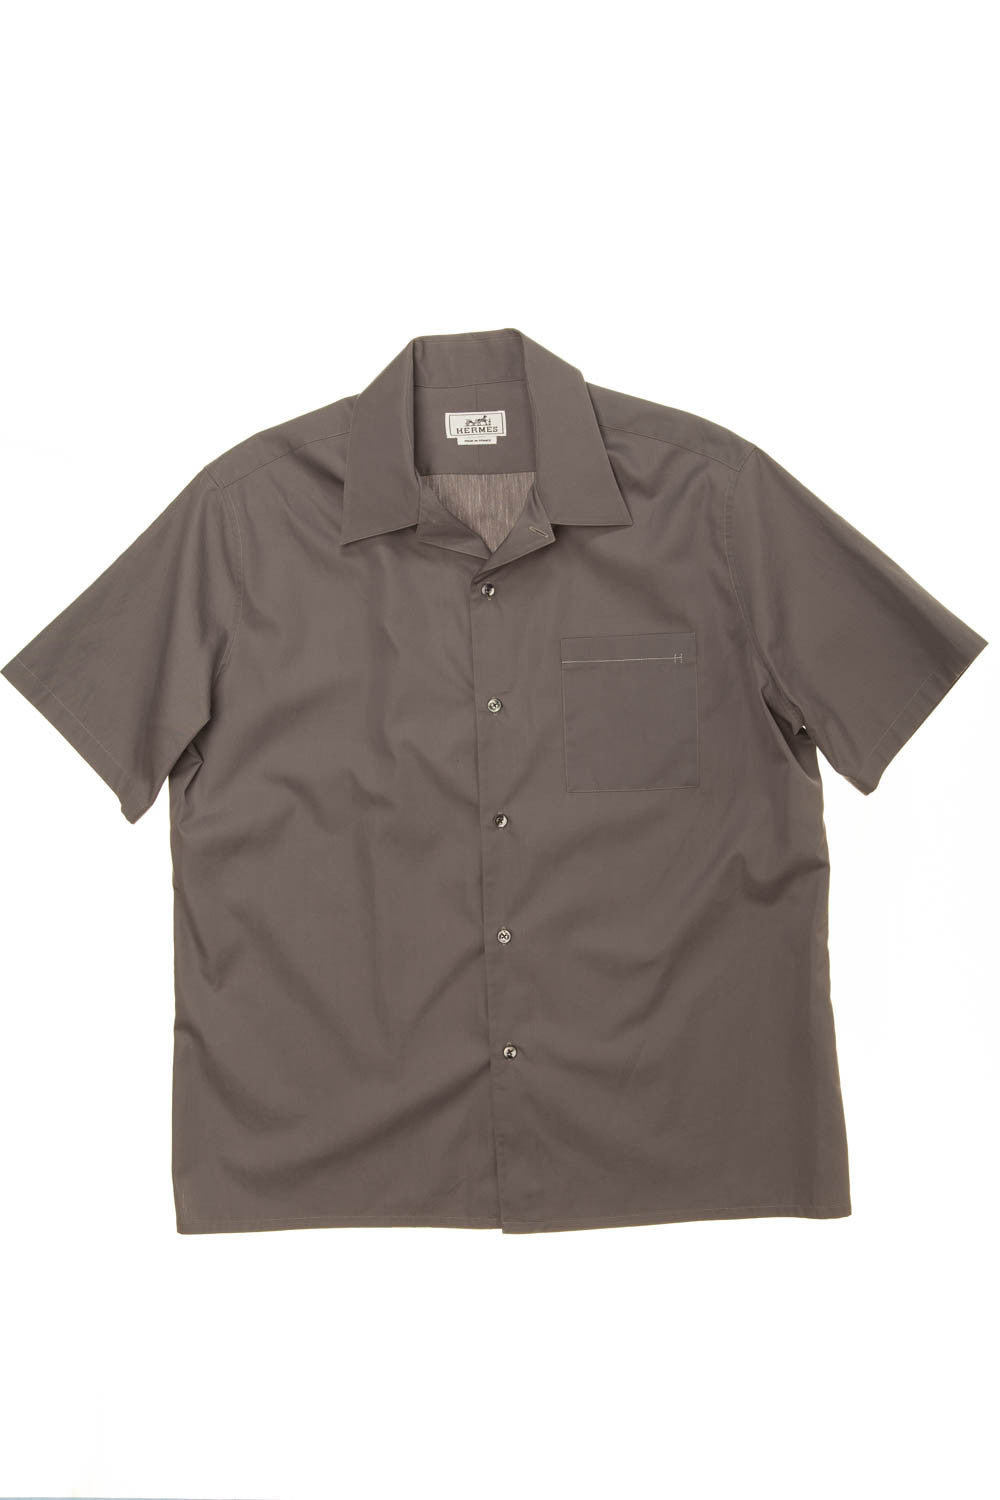 Hermes - Grey Short Sleeve Men's Shirt - IT 42